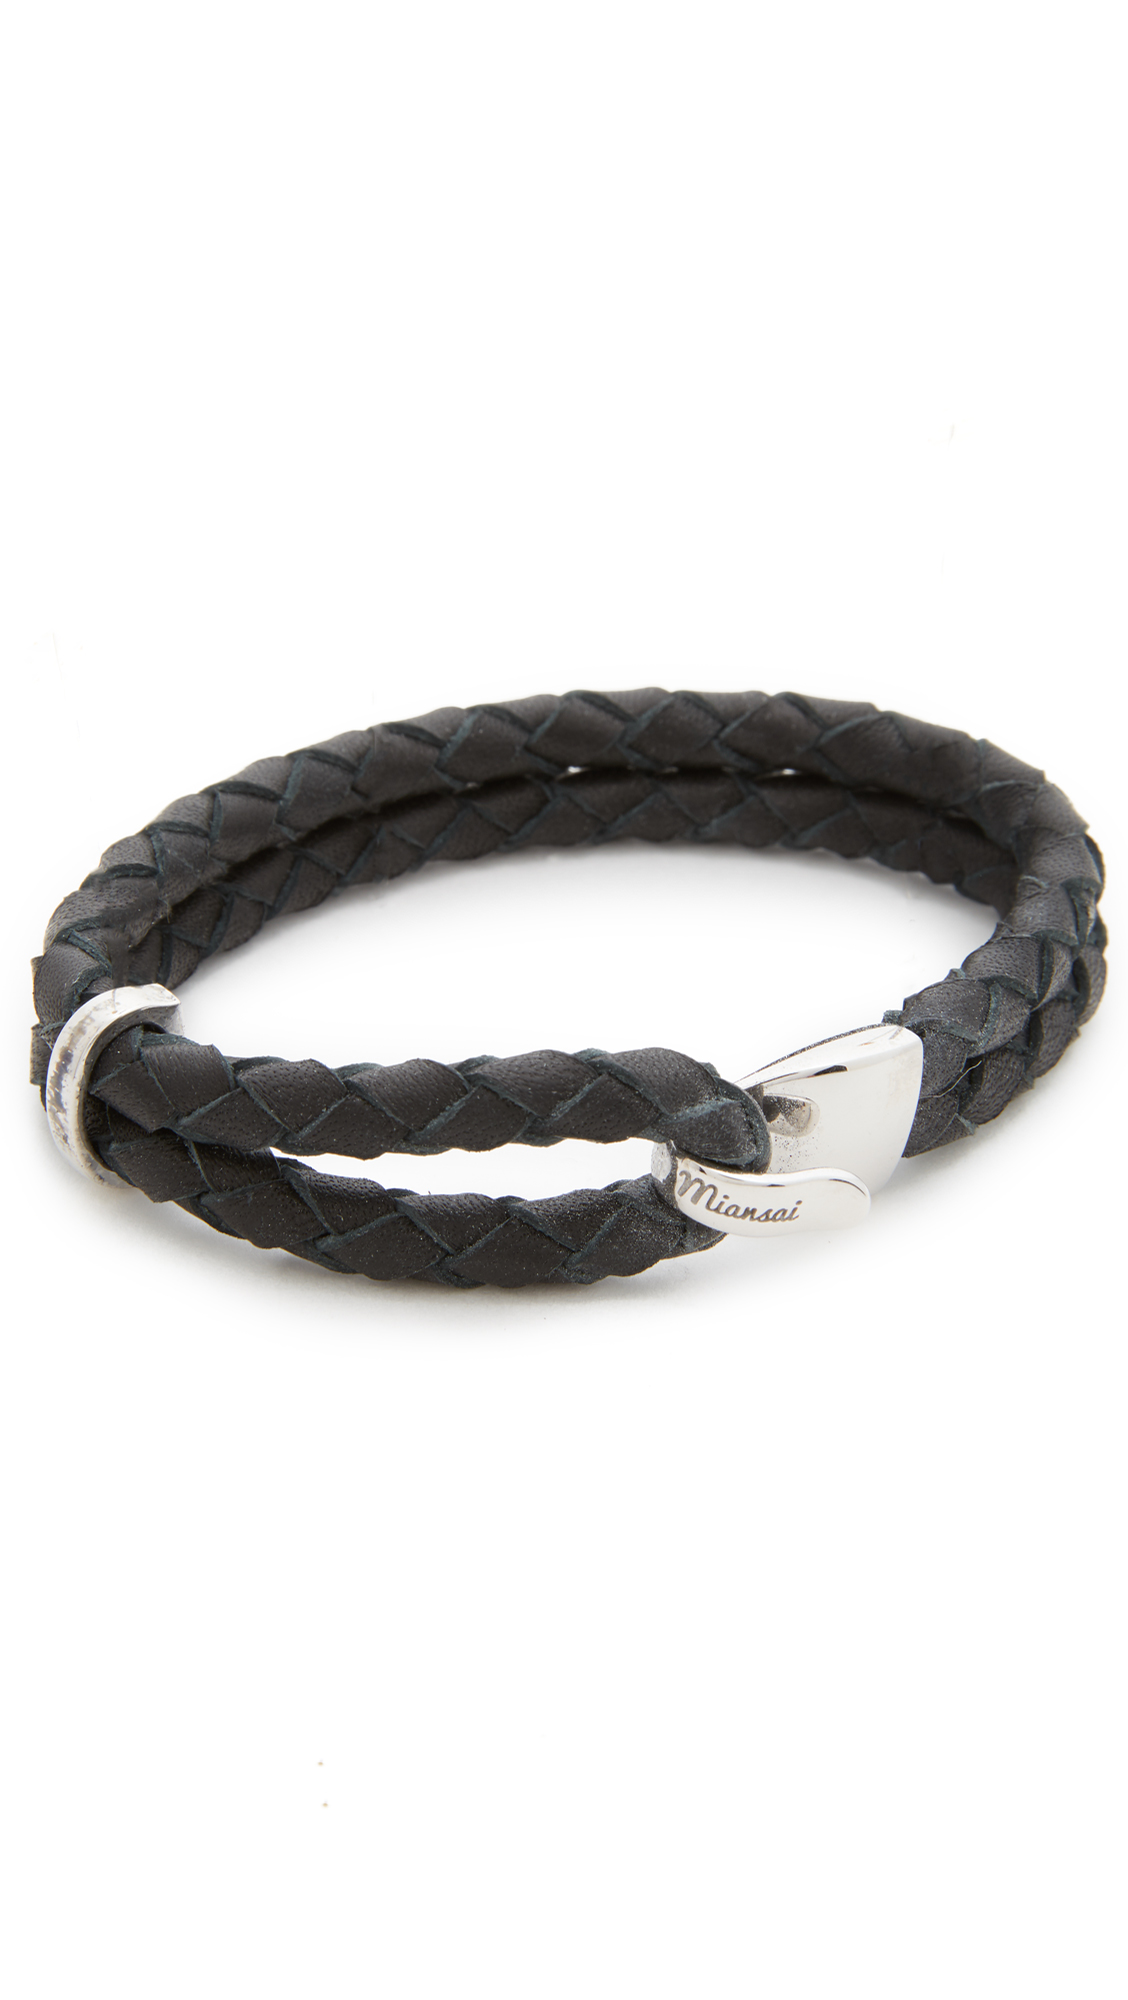 MIANSAI Beacon Sterling Silver Braided Leather Bracelet in Silver/Black